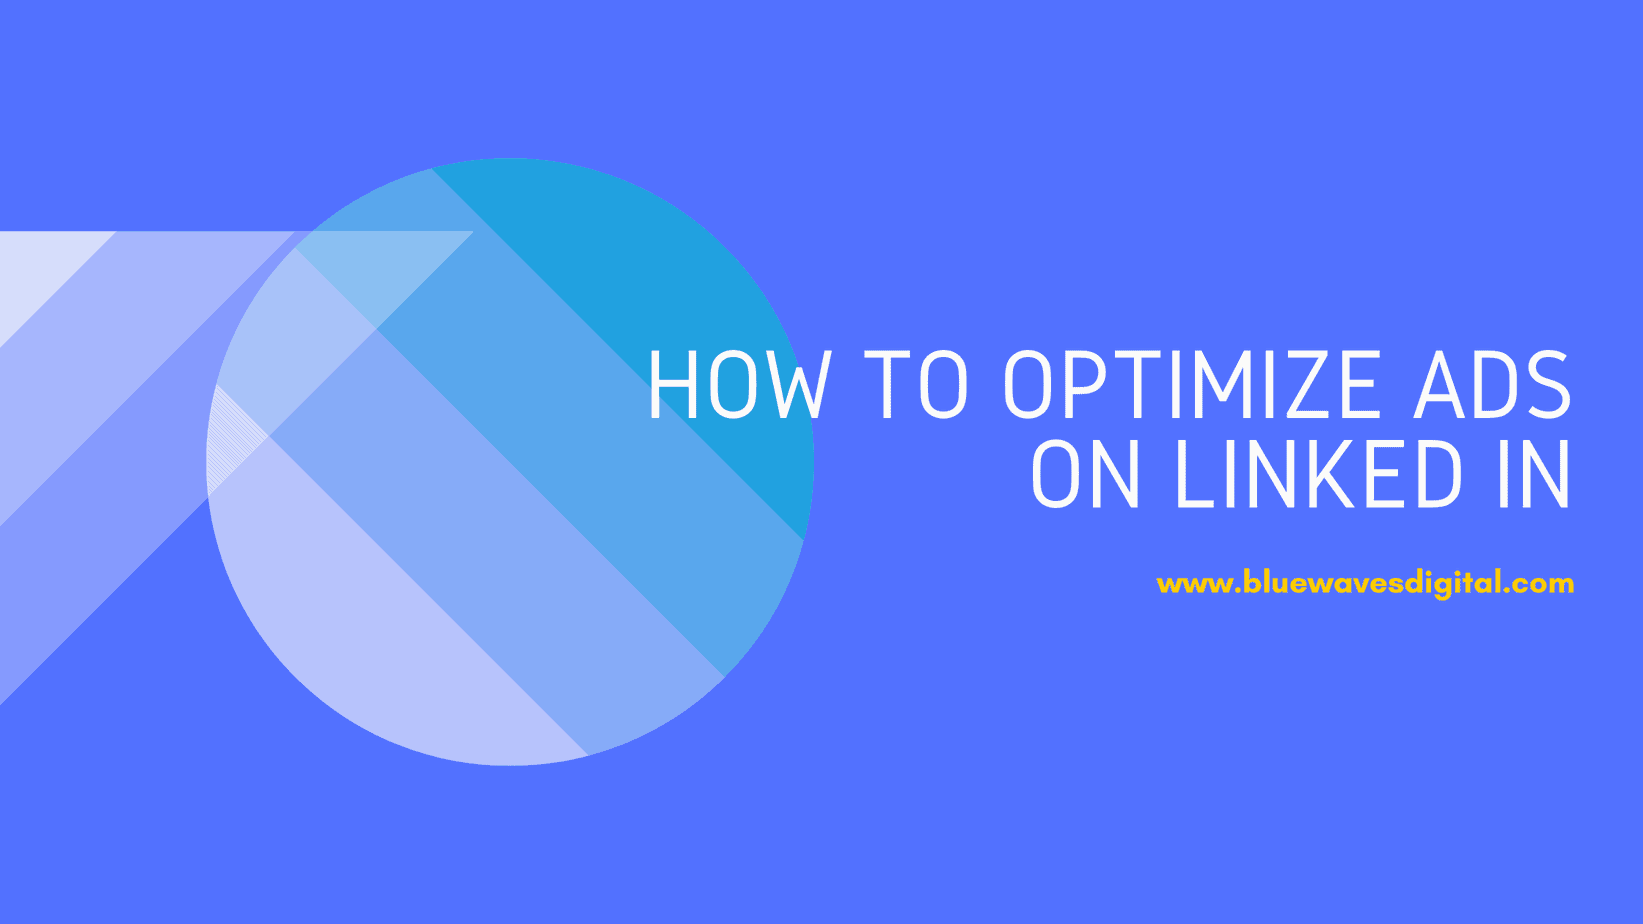 LinkedIn Ads - How to Optimize Your Ads on This Platform